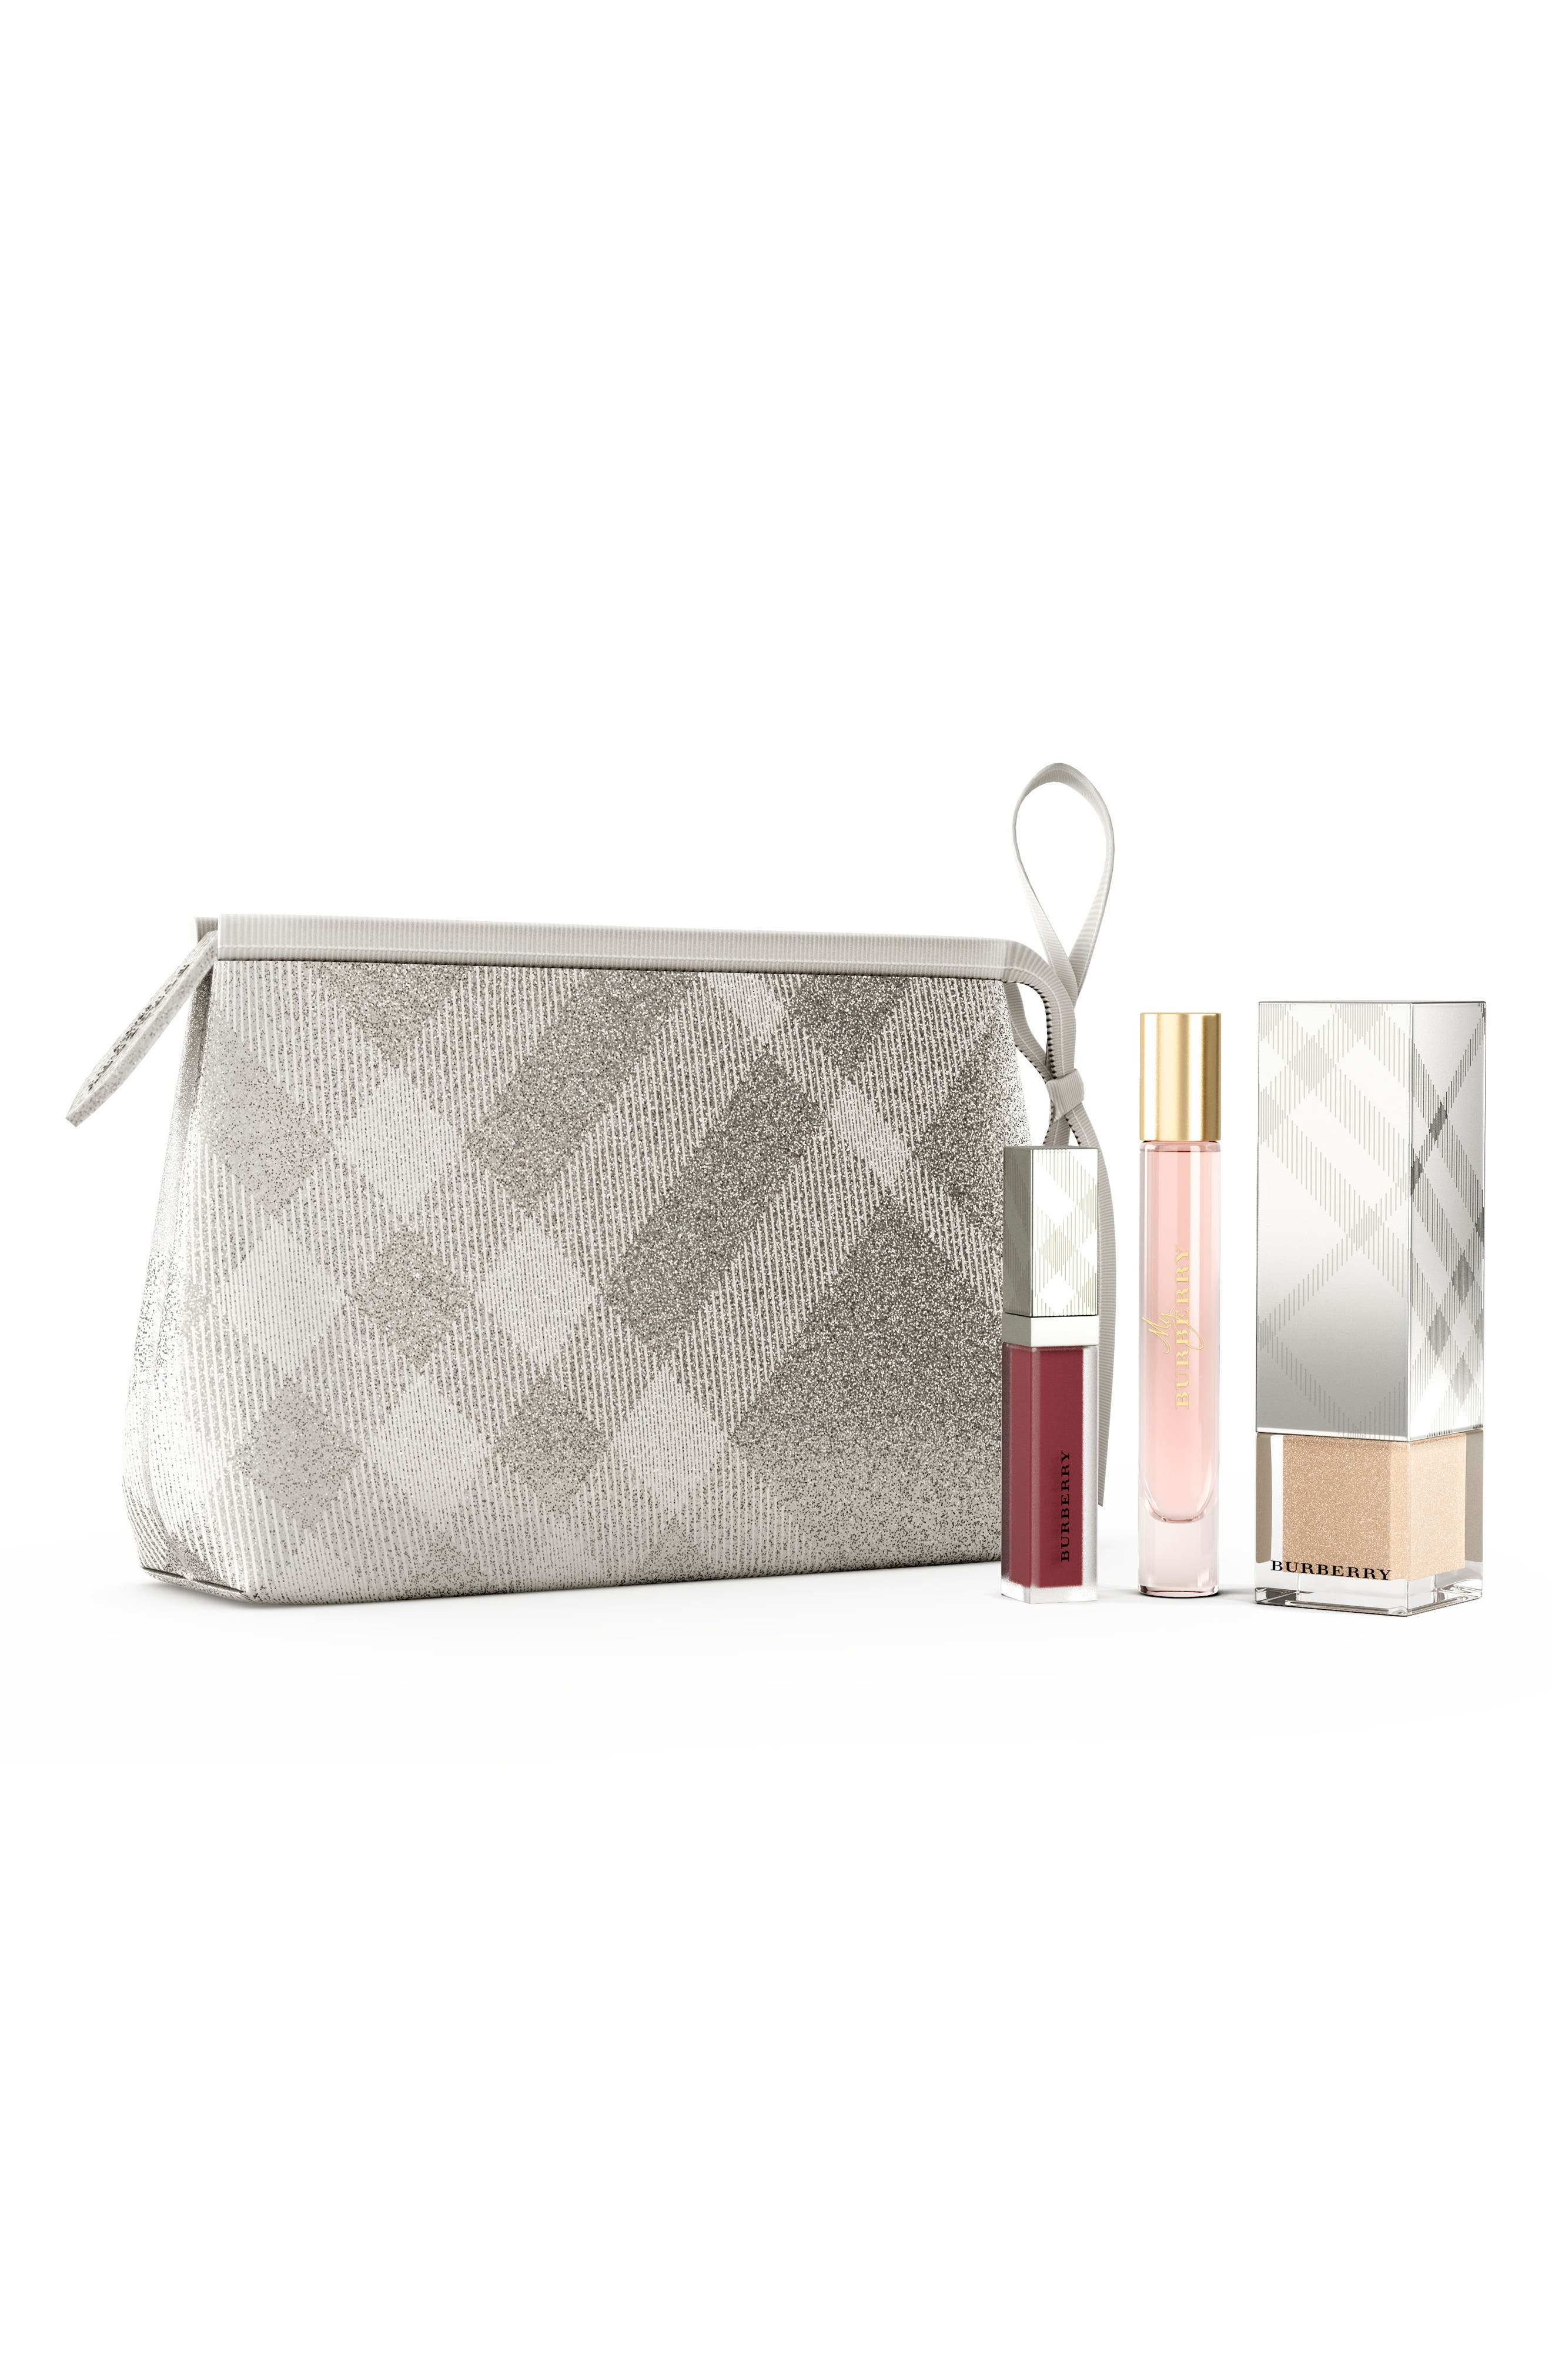 Main Image - Burberry Beauty Festive Beauty Pouch Collection (Limited Edition)